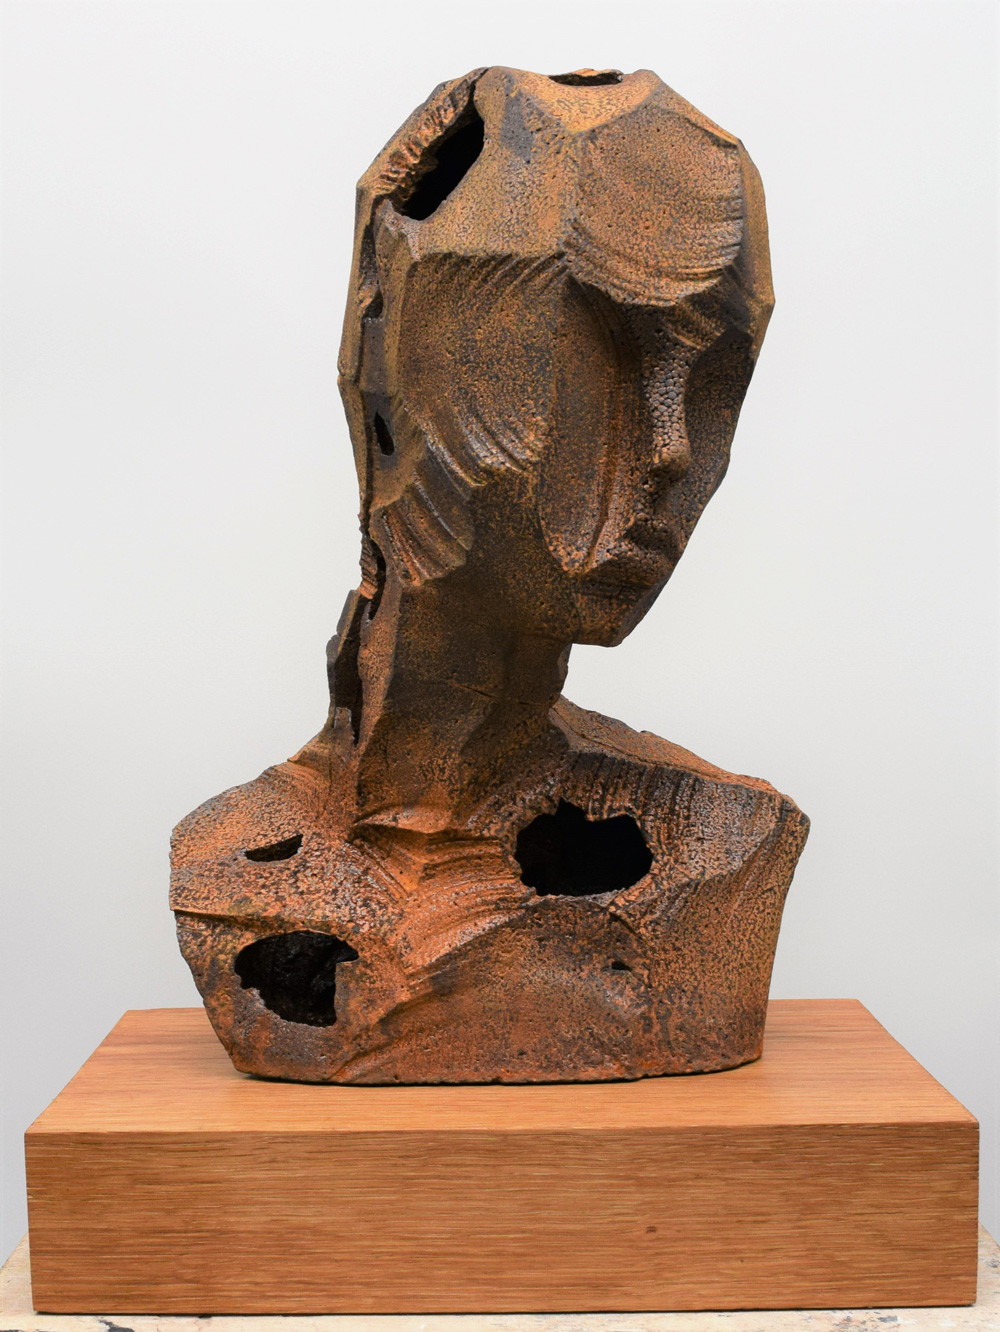 Rory Menage   Girl with Leaning Head , 2017  Cast iron, oak  42cm x 30cm x 20cm  Unique